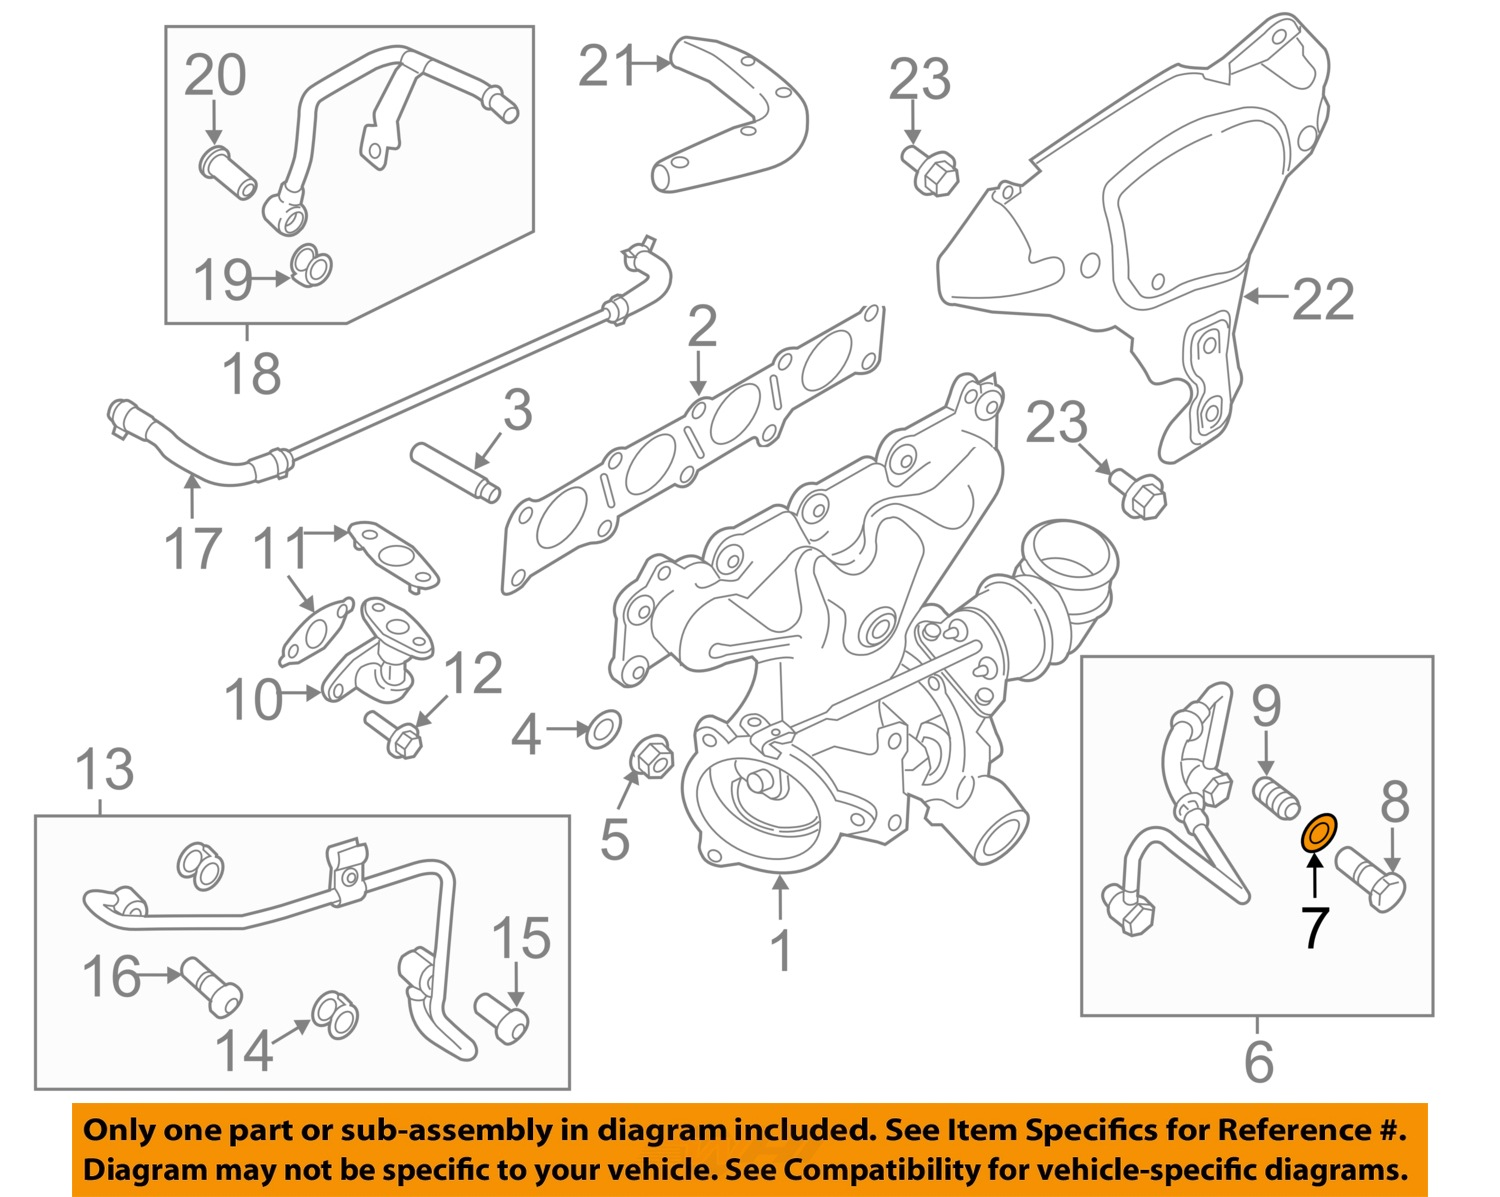 Bmw 535i Wiring Diagram Another Blog About 528i Diagrams Kia Optima Fuse Box Ebay 2010